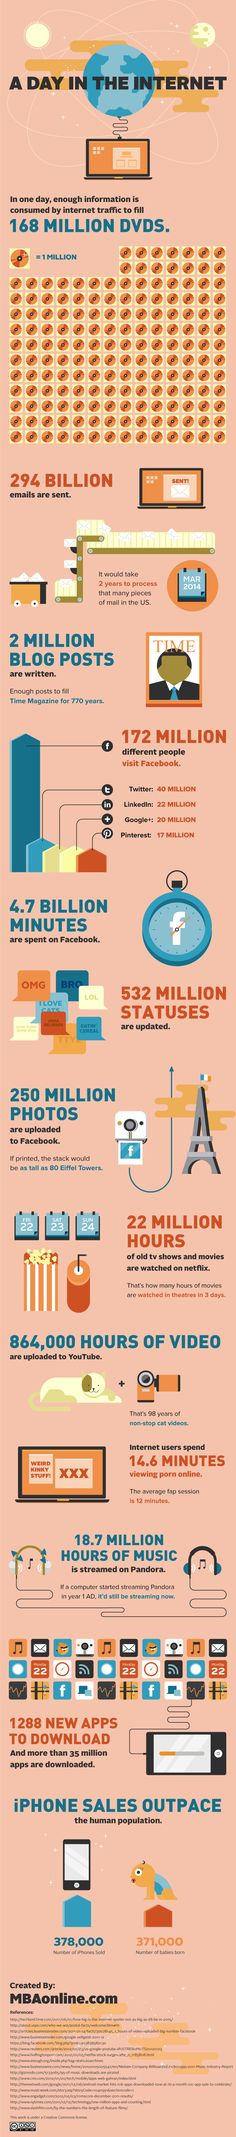 The state of our Internet? [INFOGRAPHIC]